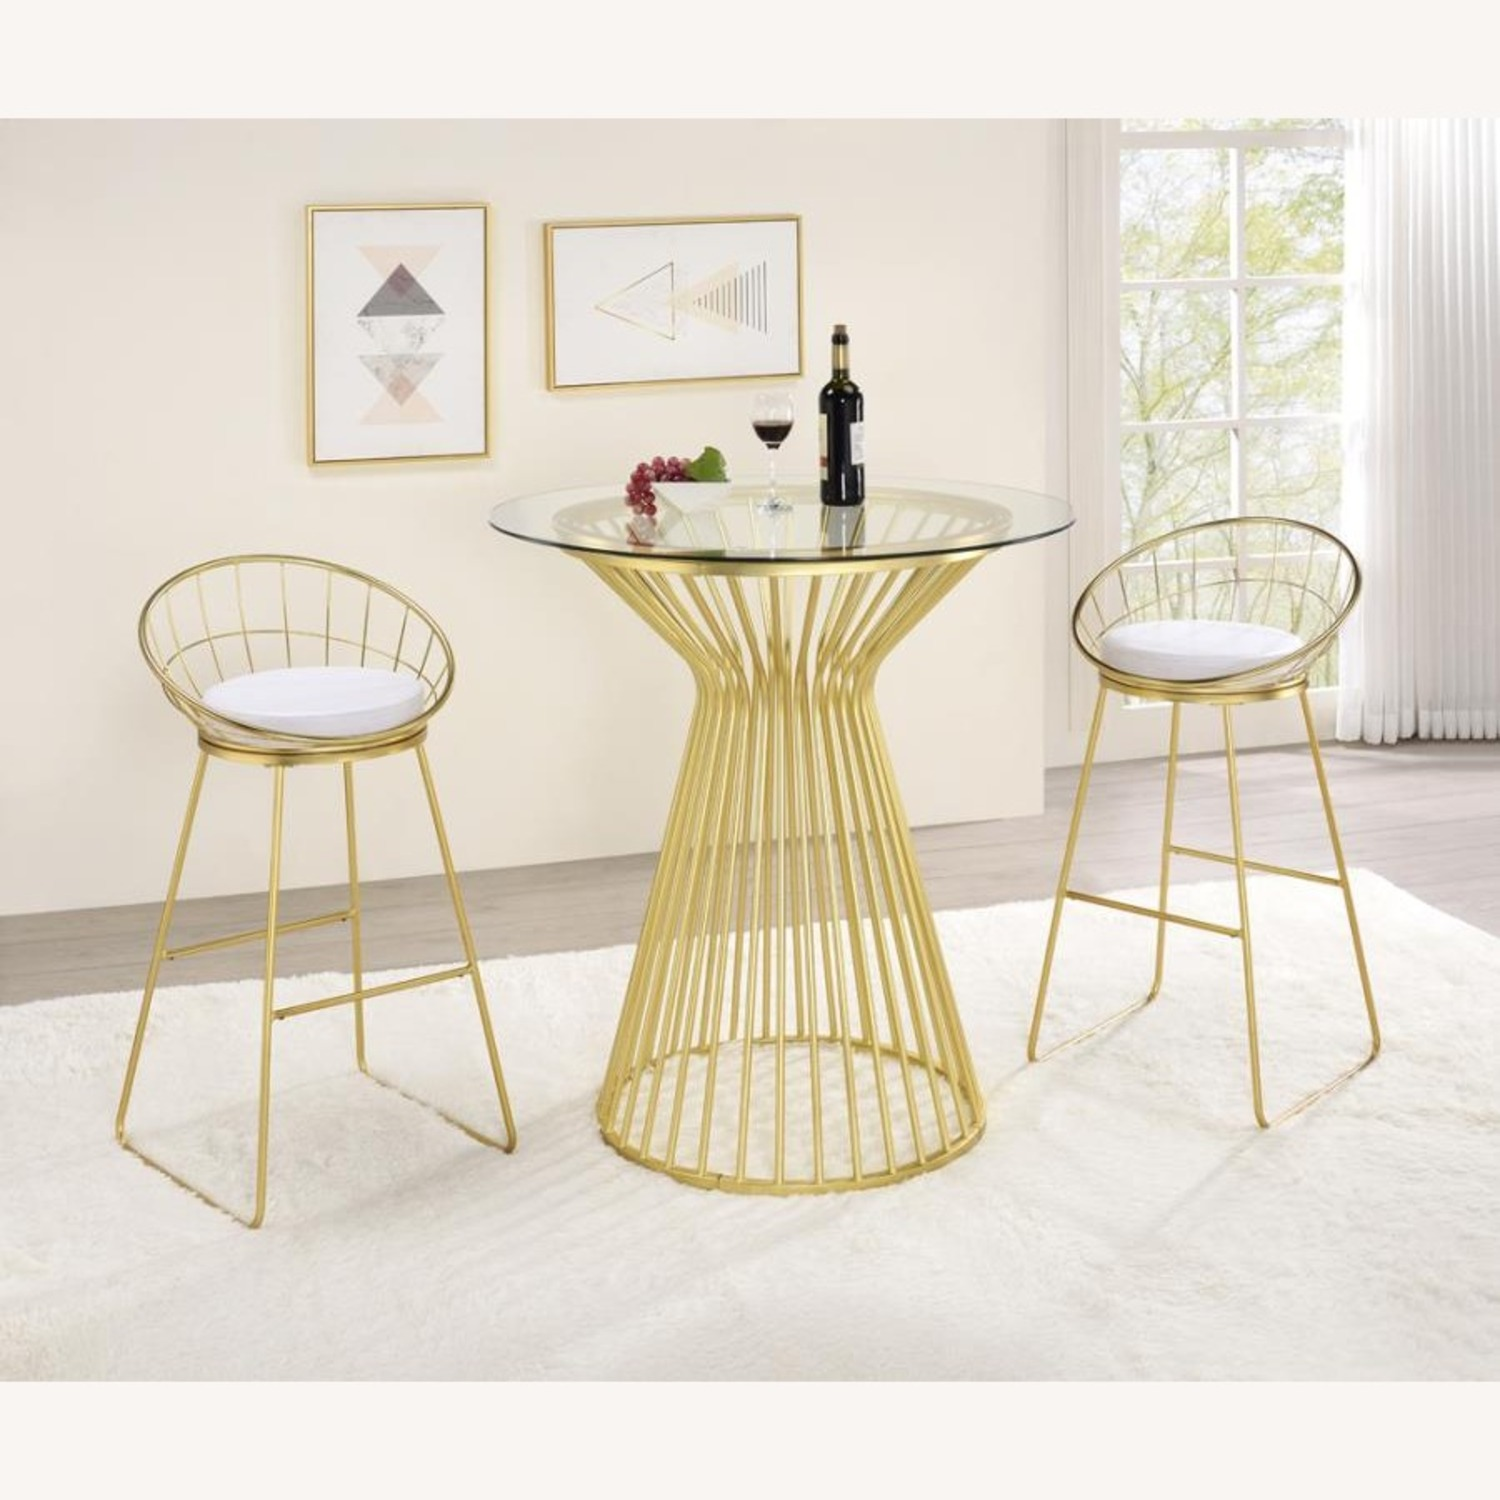 Bar Table W Round Wire Frame In Matte Brass - image-3